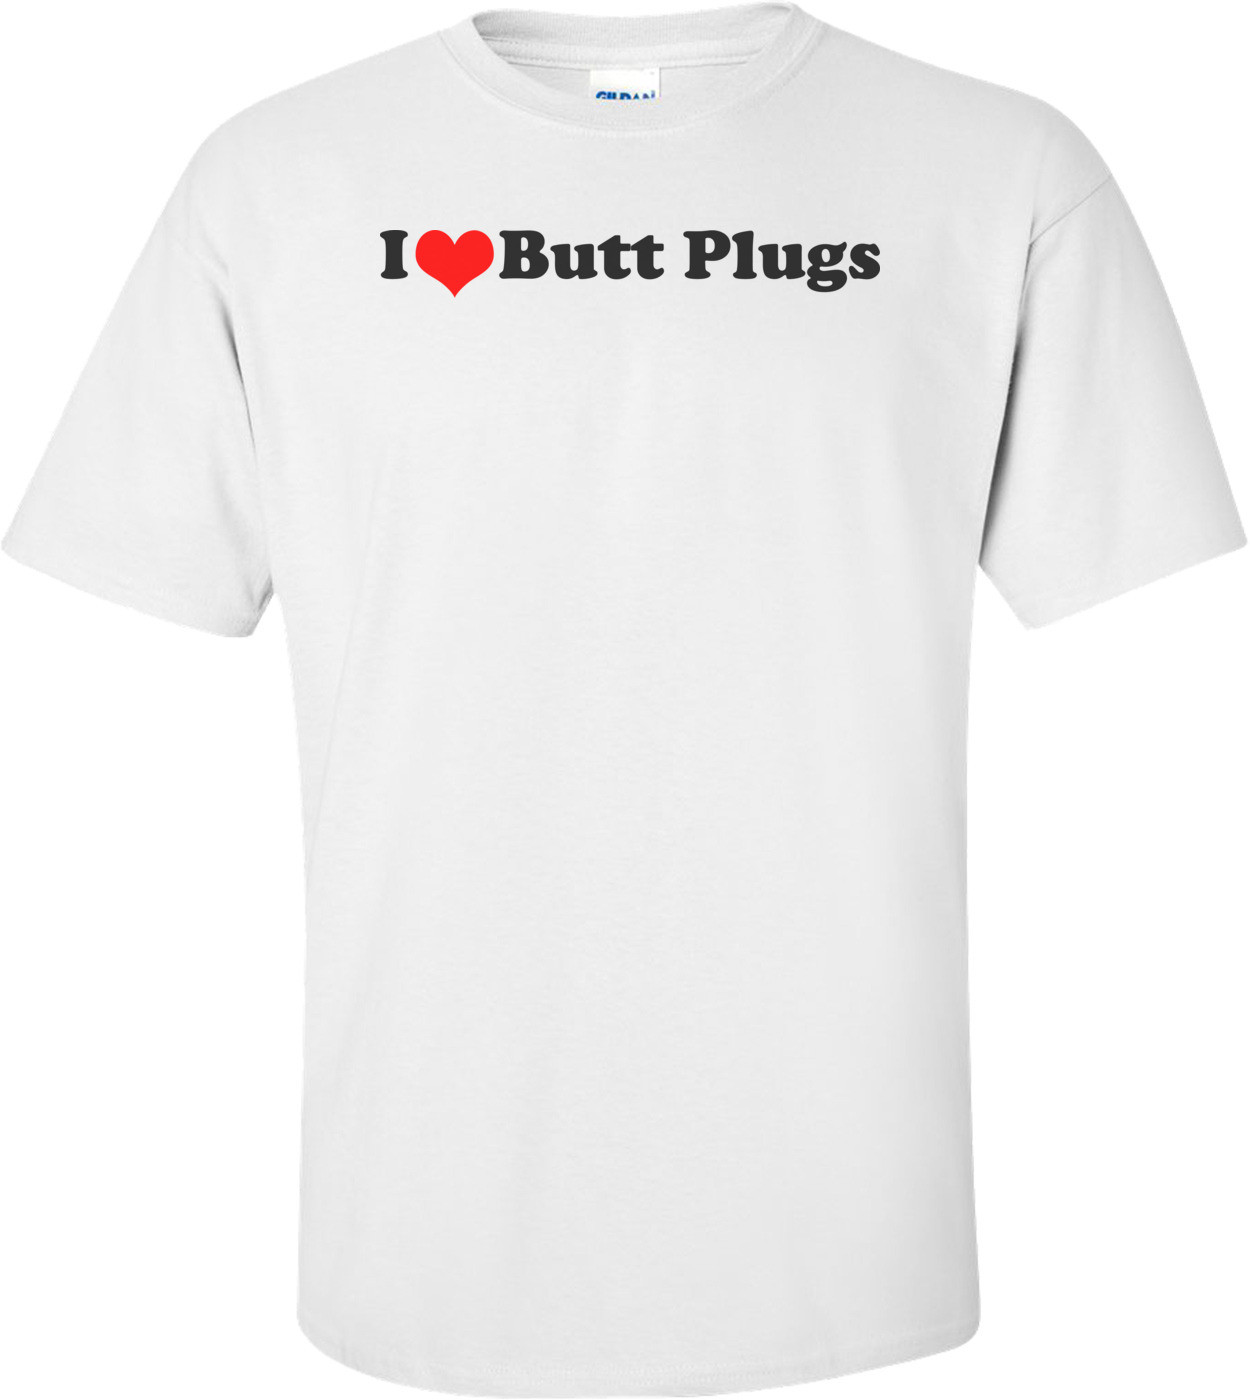 I Love Butt Plugs - Funny T-shirt